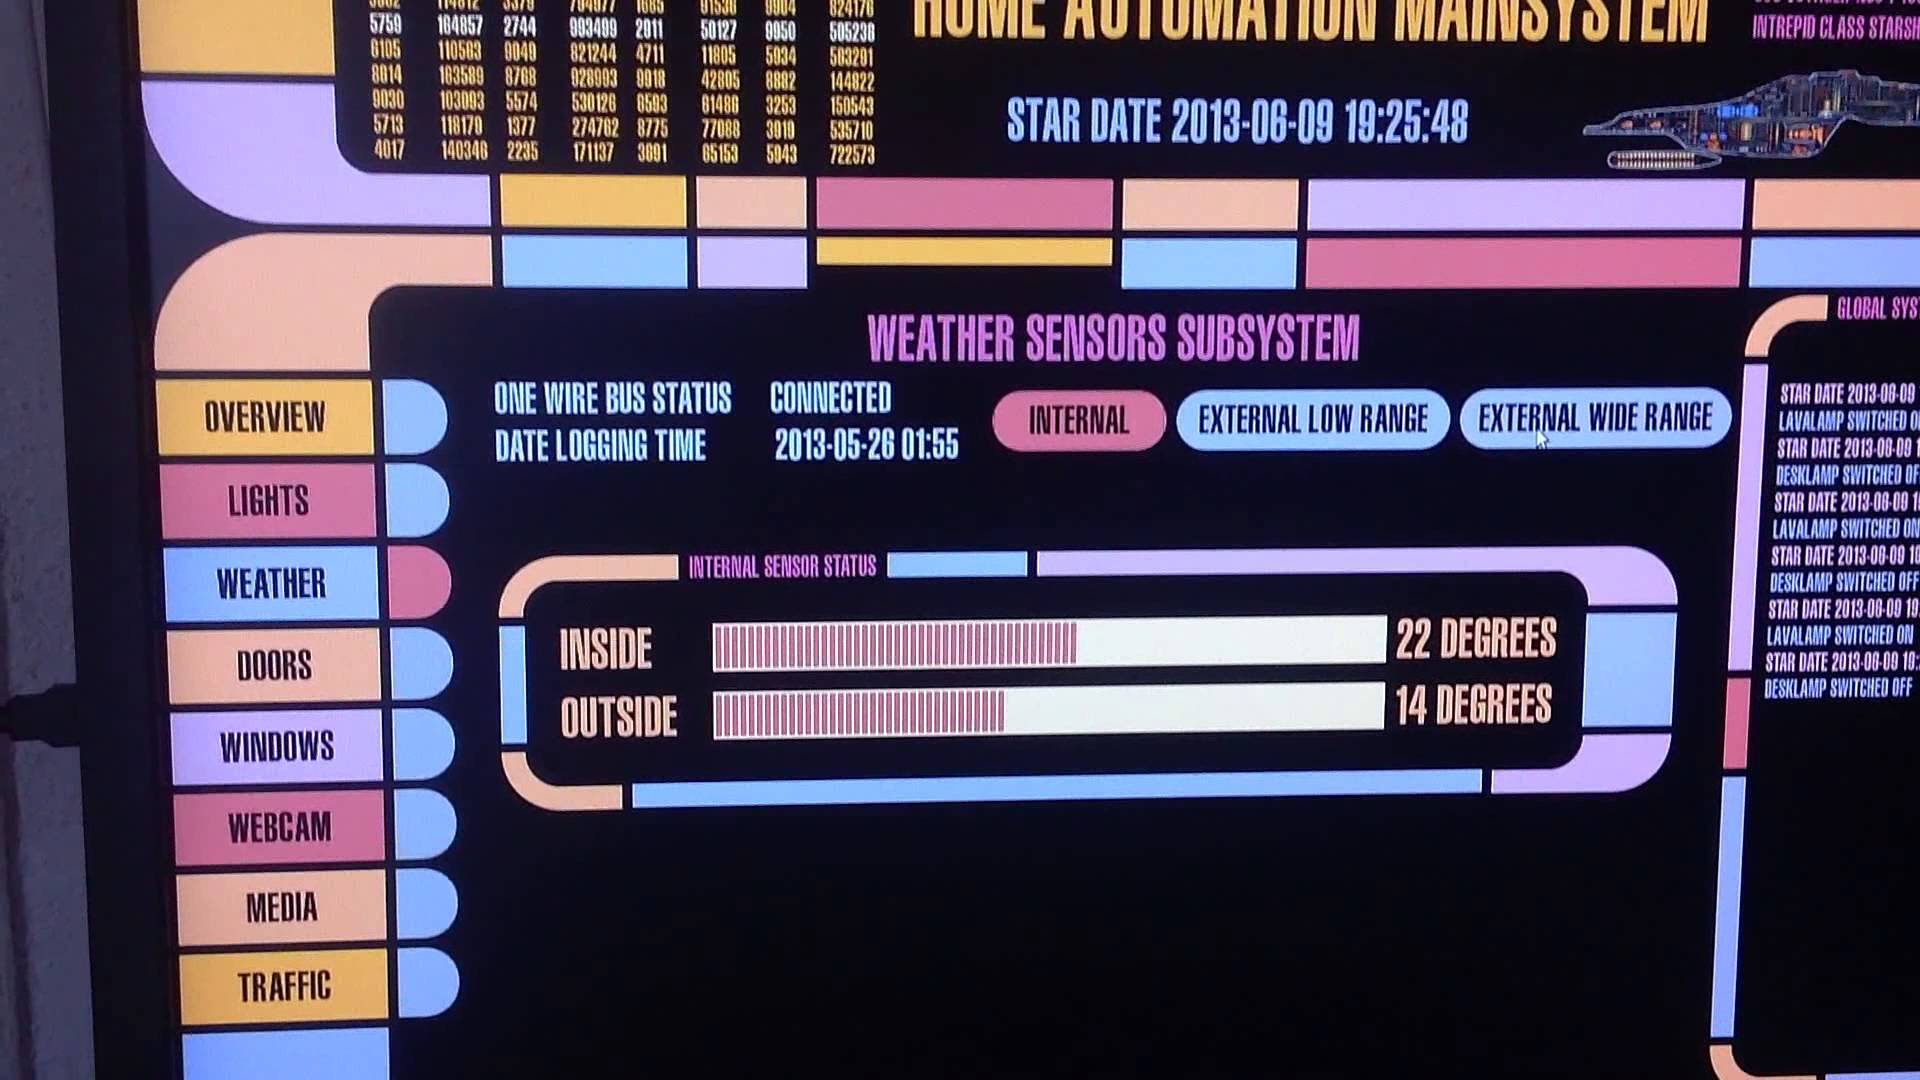 Bringing Star Trek to life: LCARS home automation with Arduino and